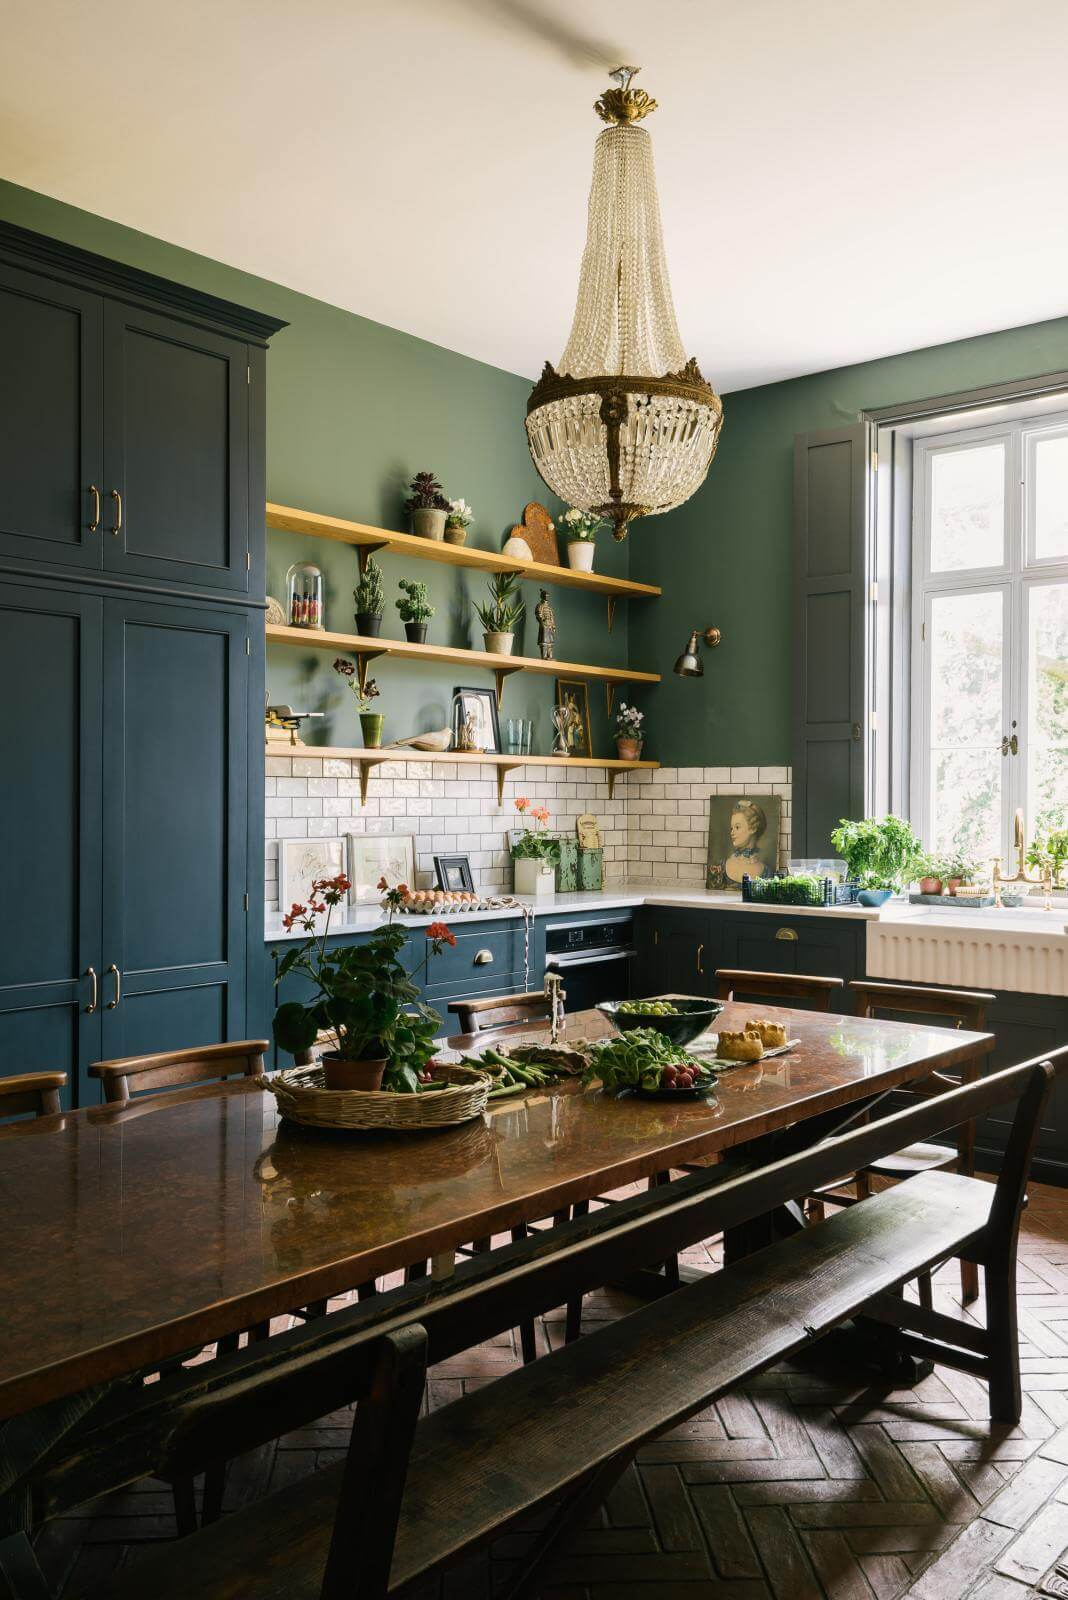 The Victorian Rectory Kitchen by deVOL